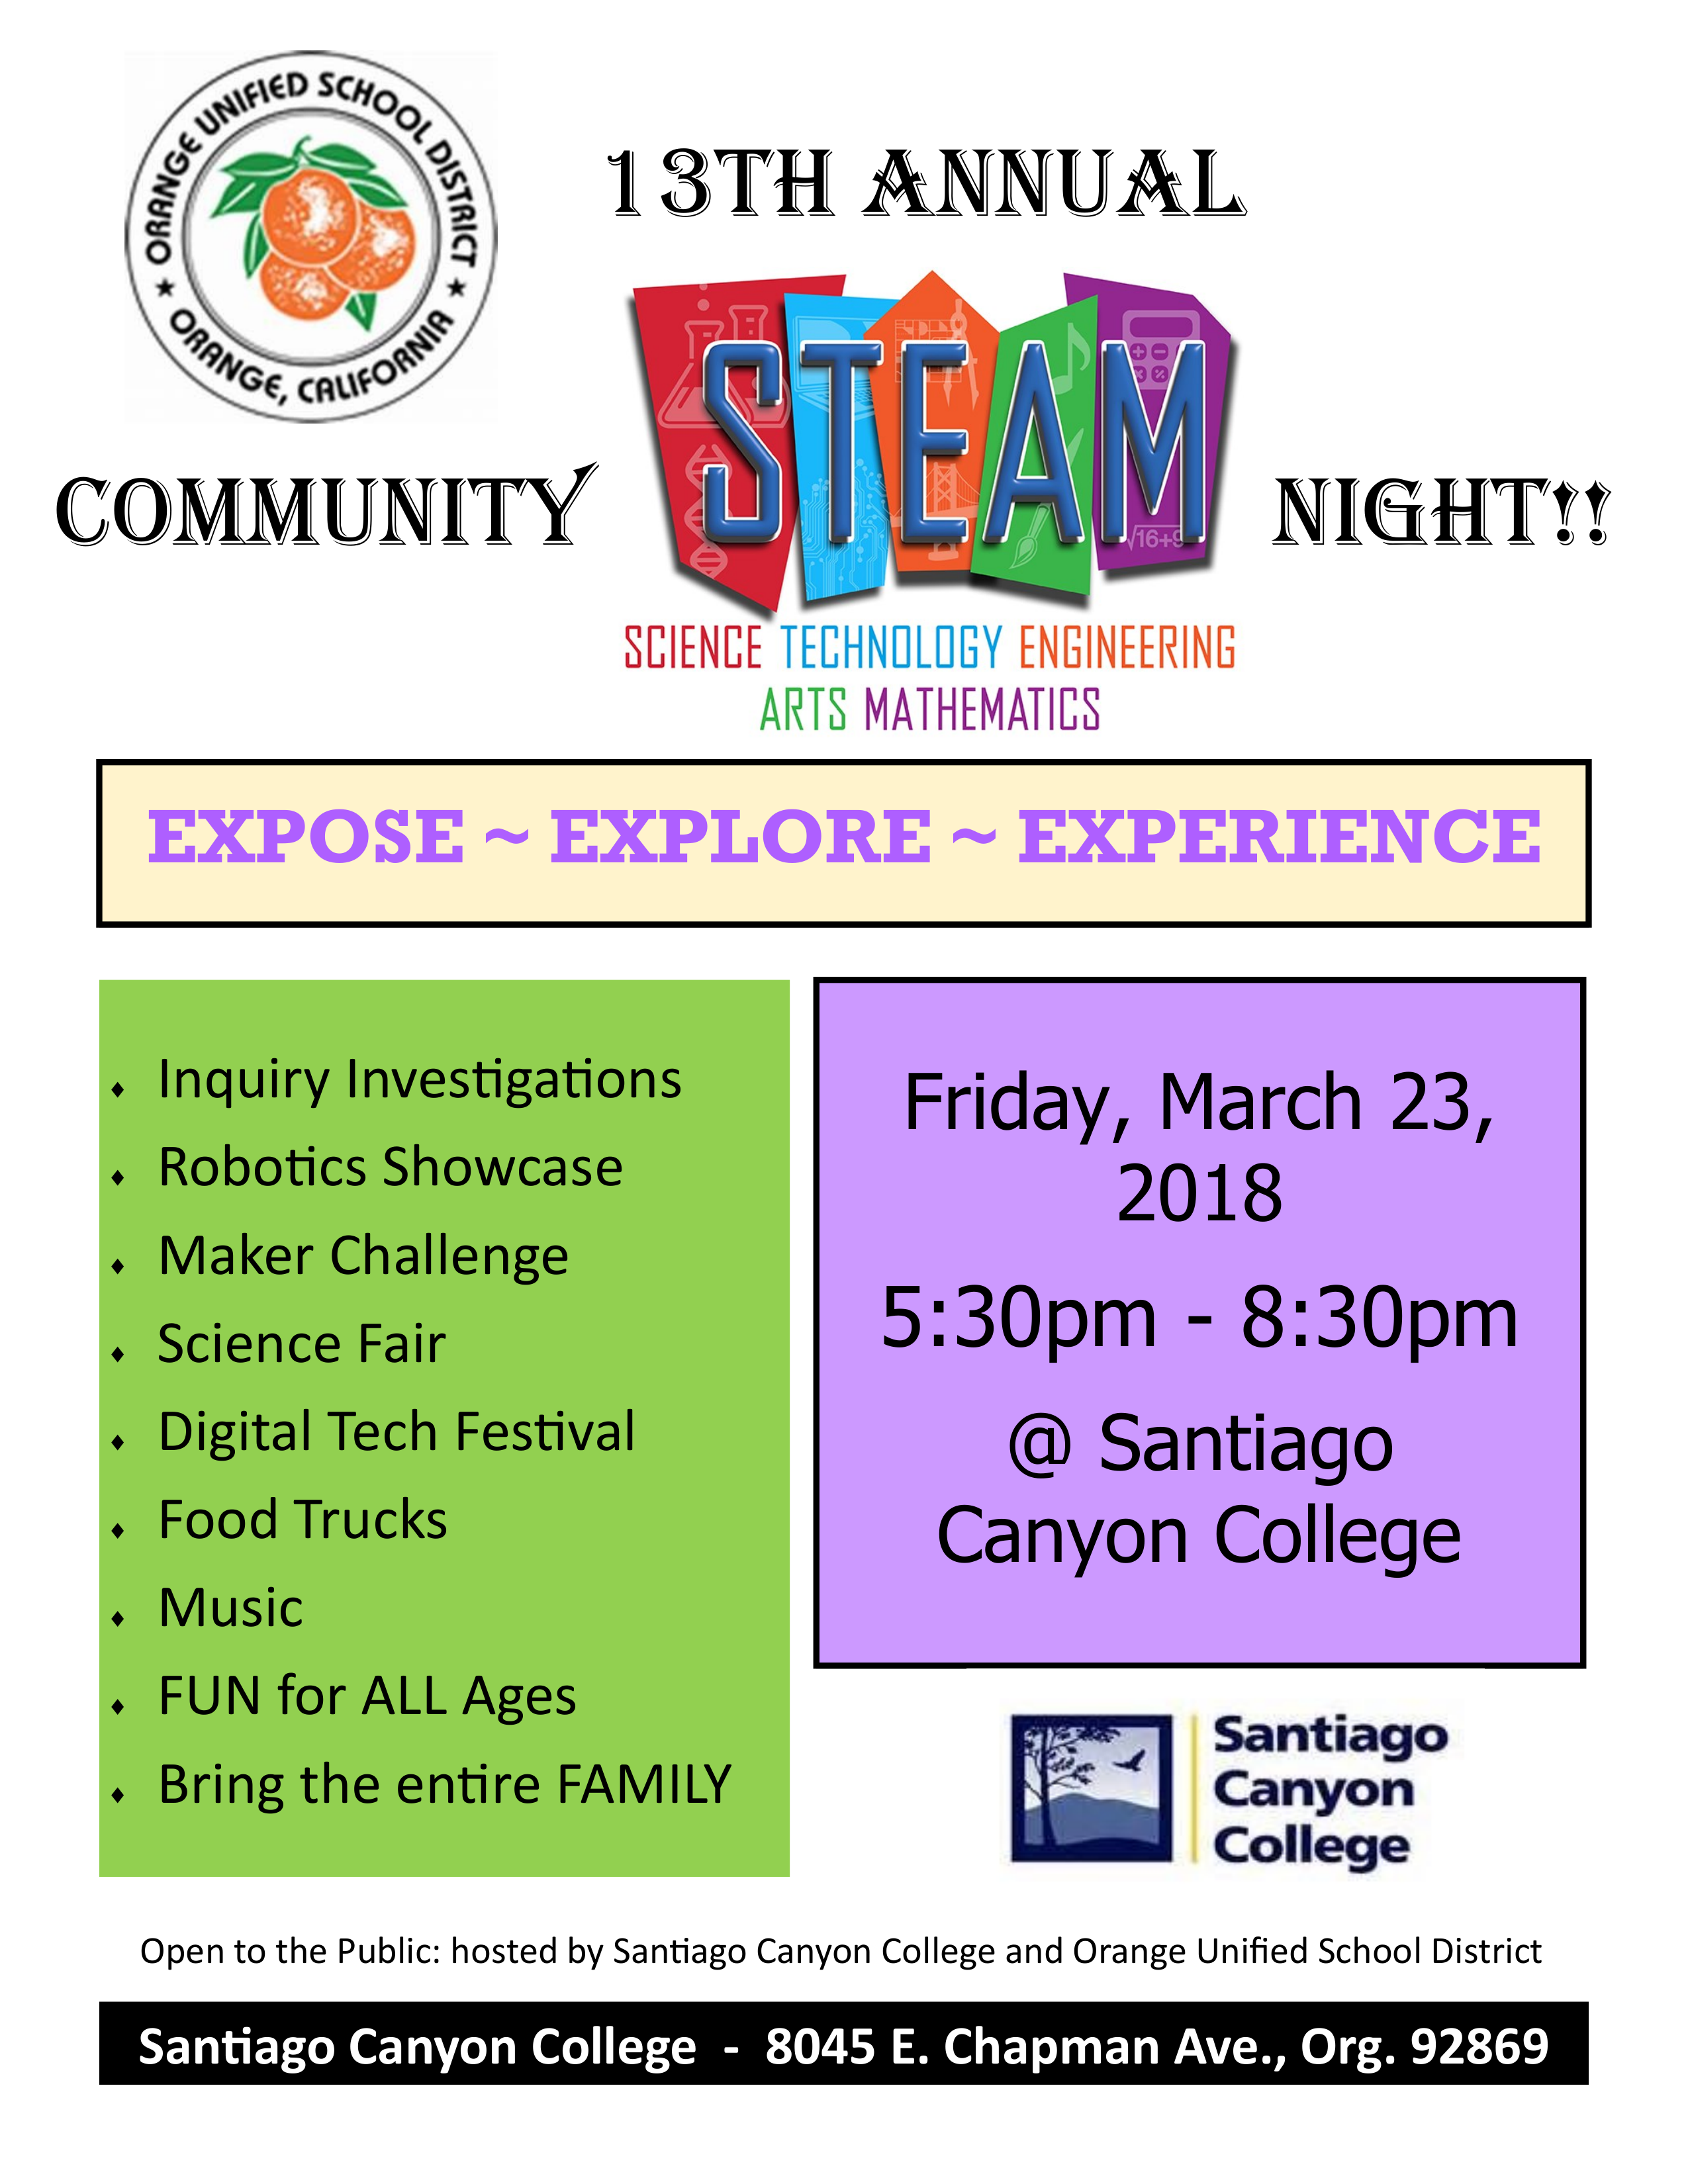 2018 Community Steam Night Flyer